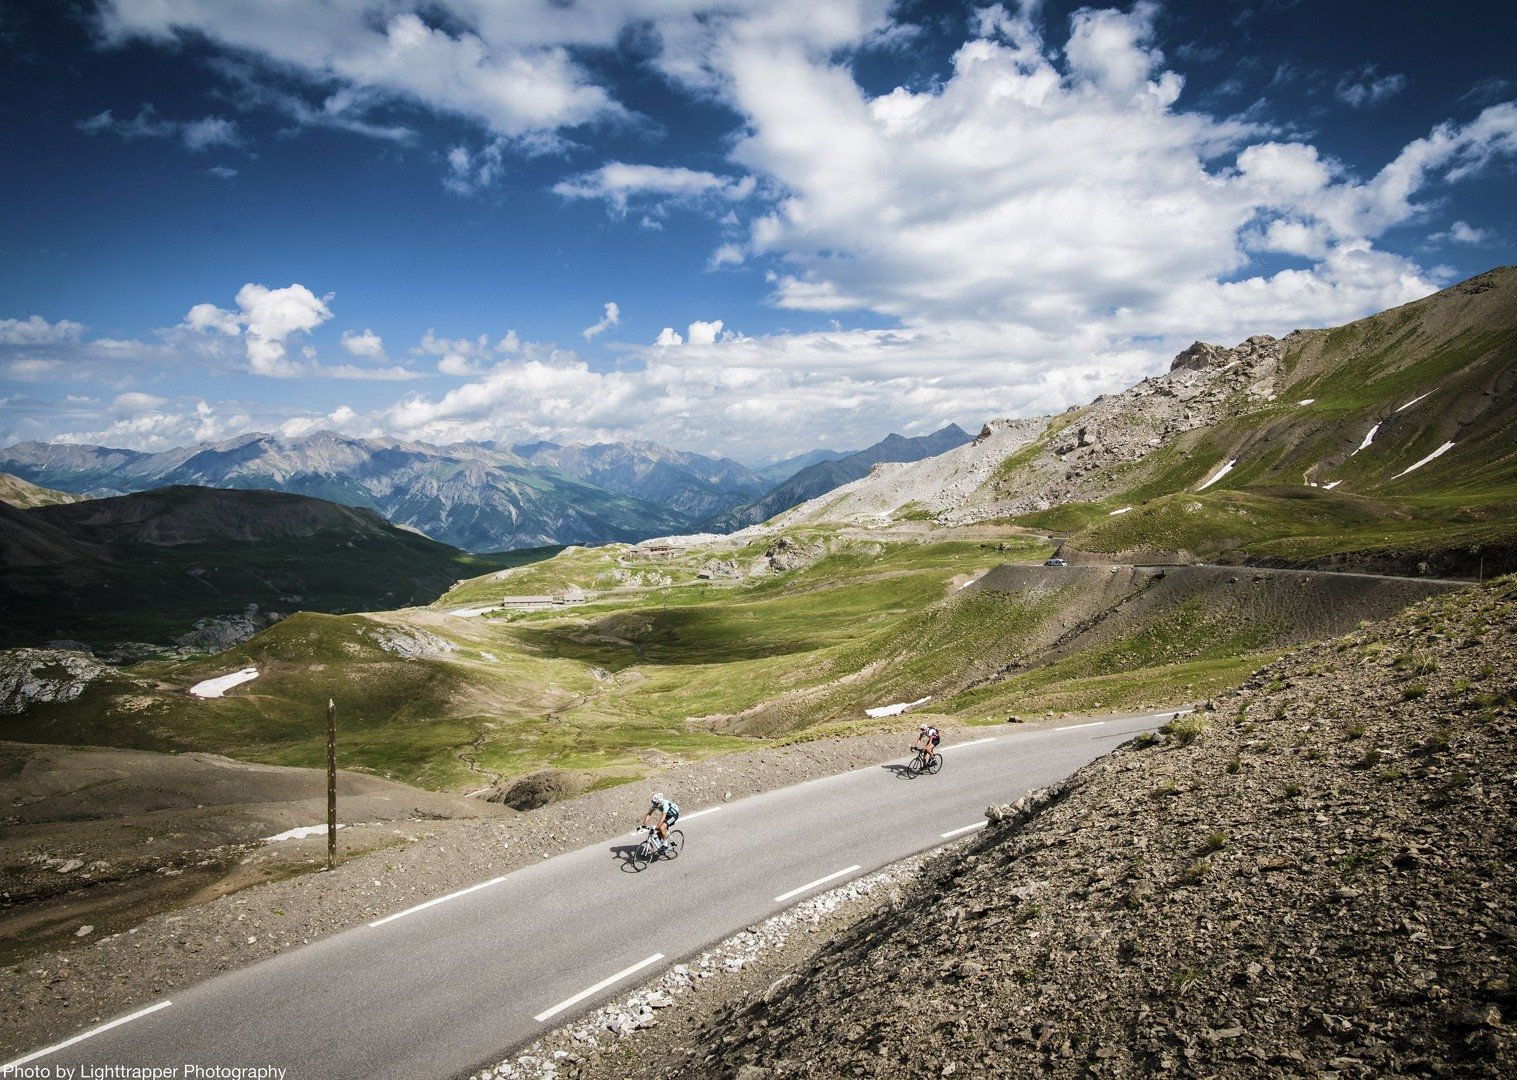 wide-expansive-mountainous-scenery-france-raid-alpine-road-cycling-holiday.jpg - France - Raid Alpine - Guided Road Cycling Holiday - Road Cycling